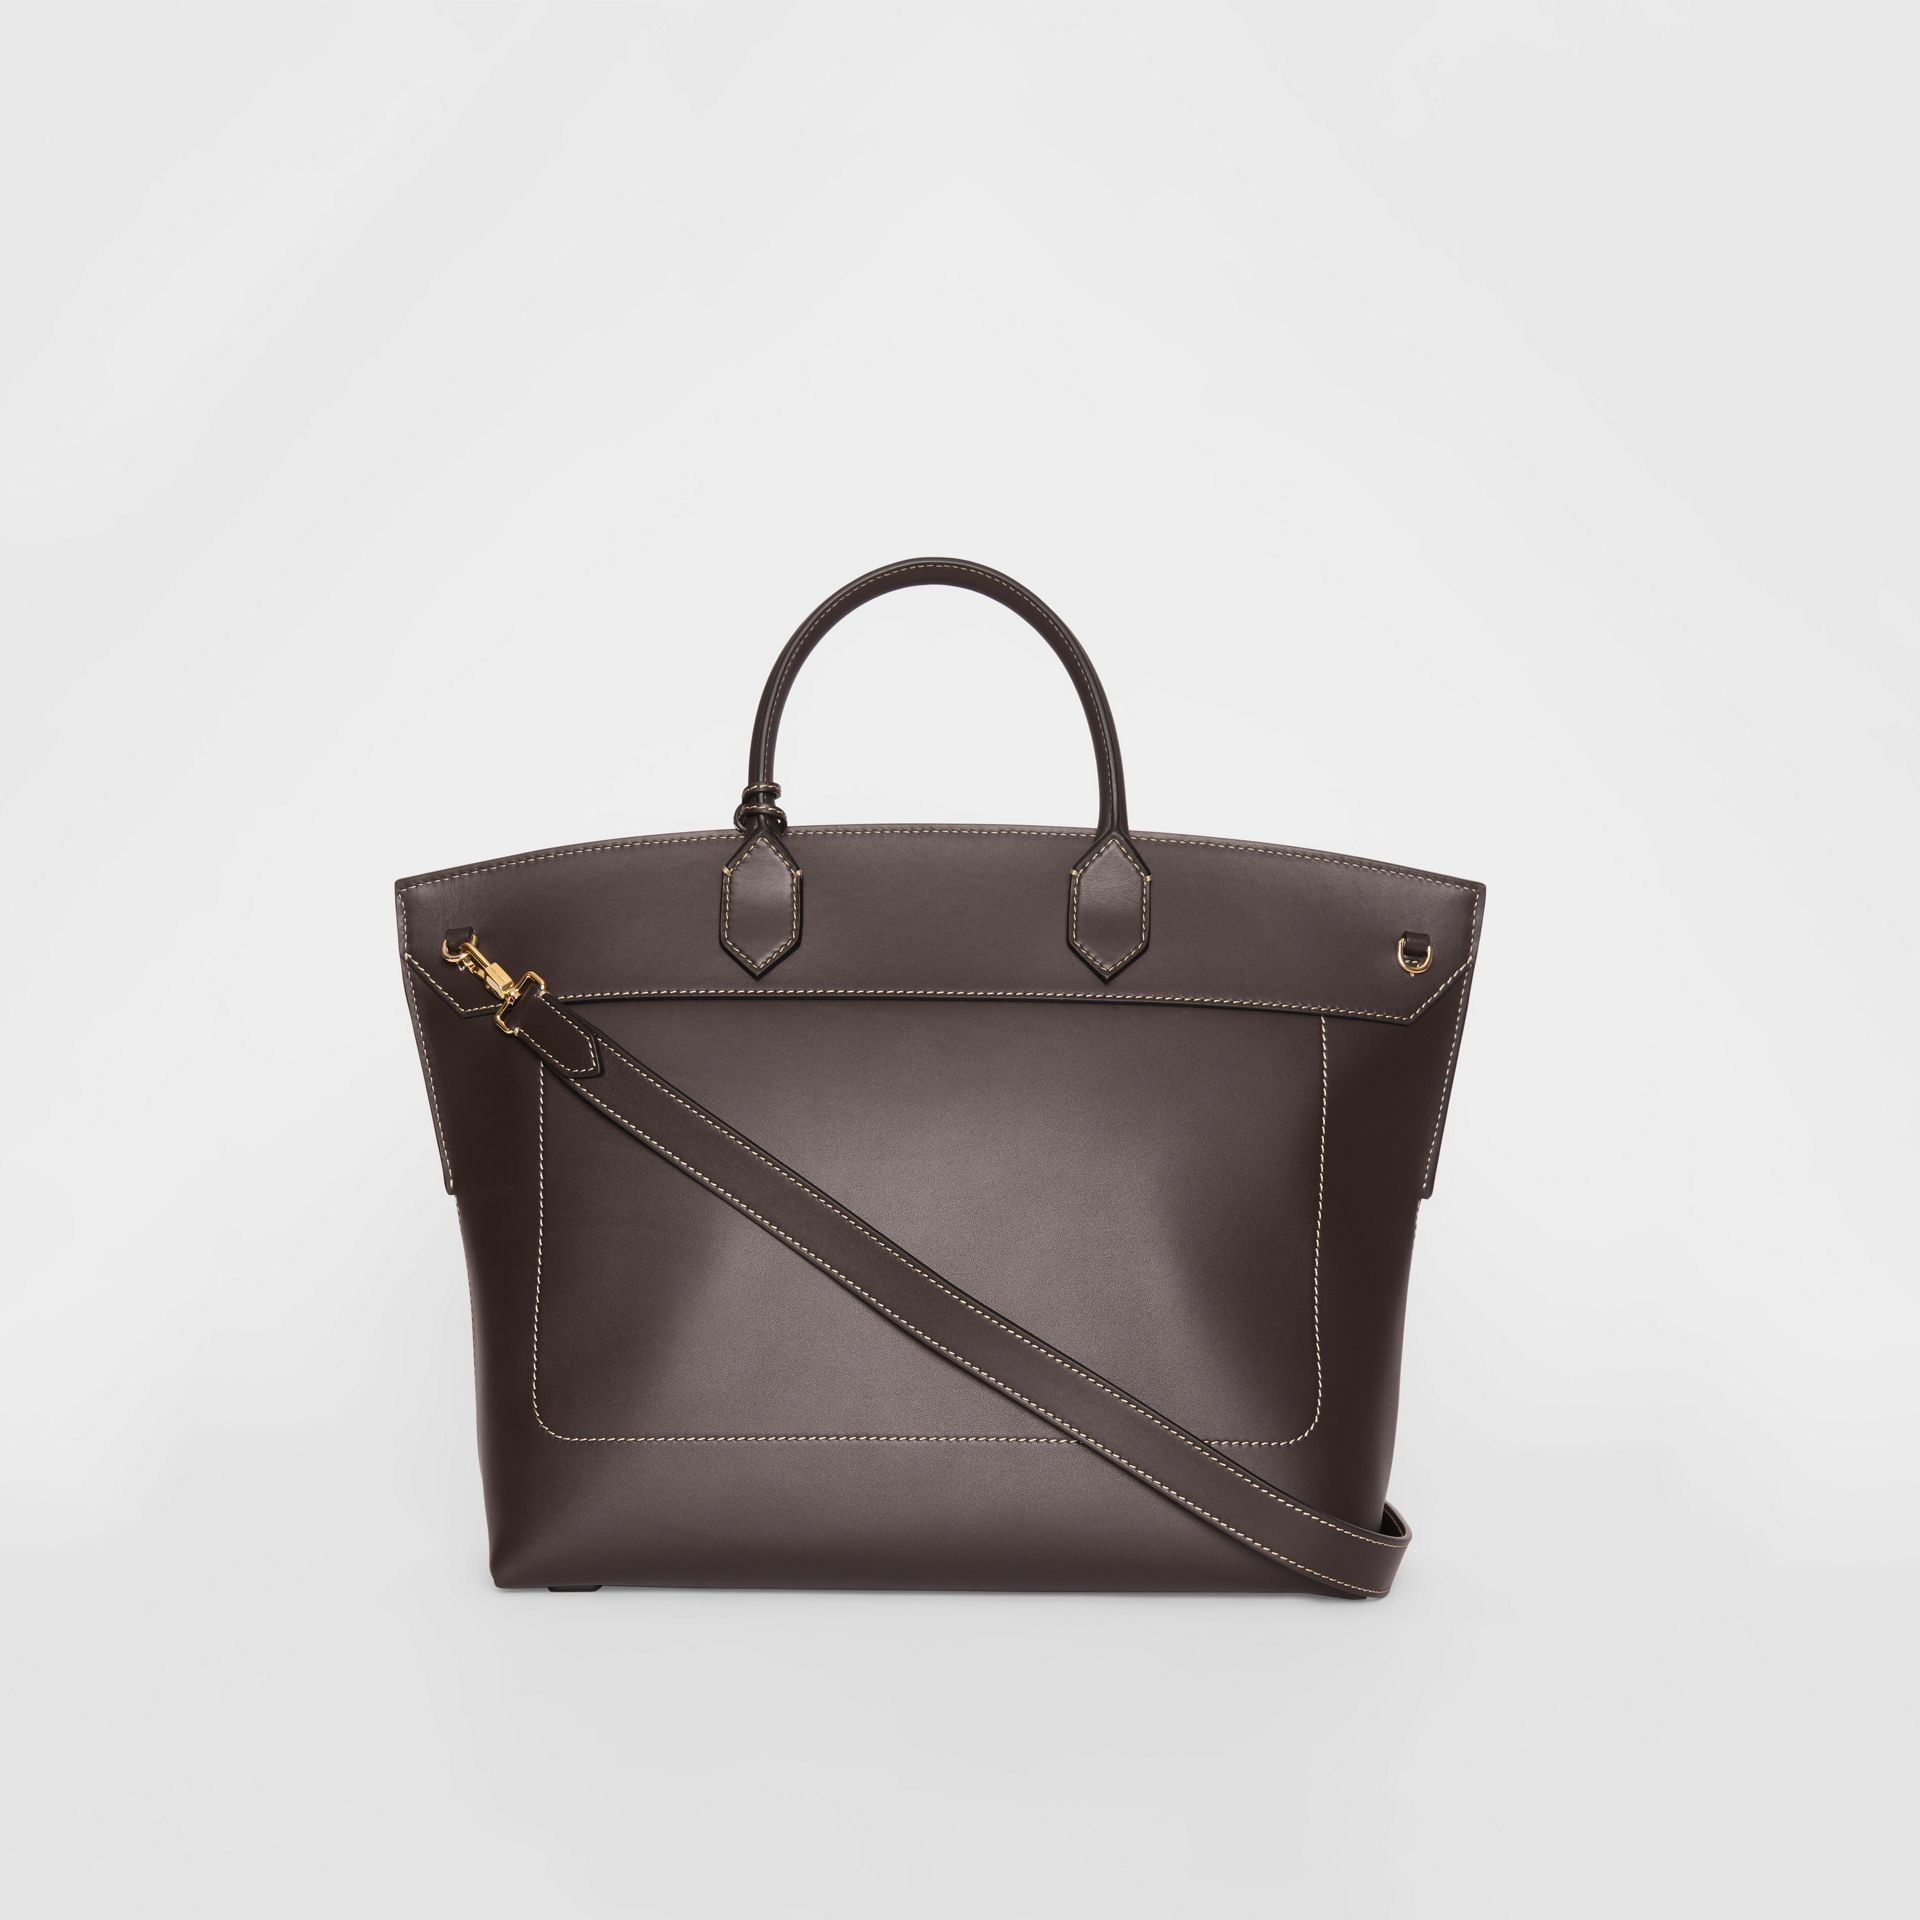 Leather Society Top Handle Bag in Coffee - Women | Burberry United States - gallery image 7